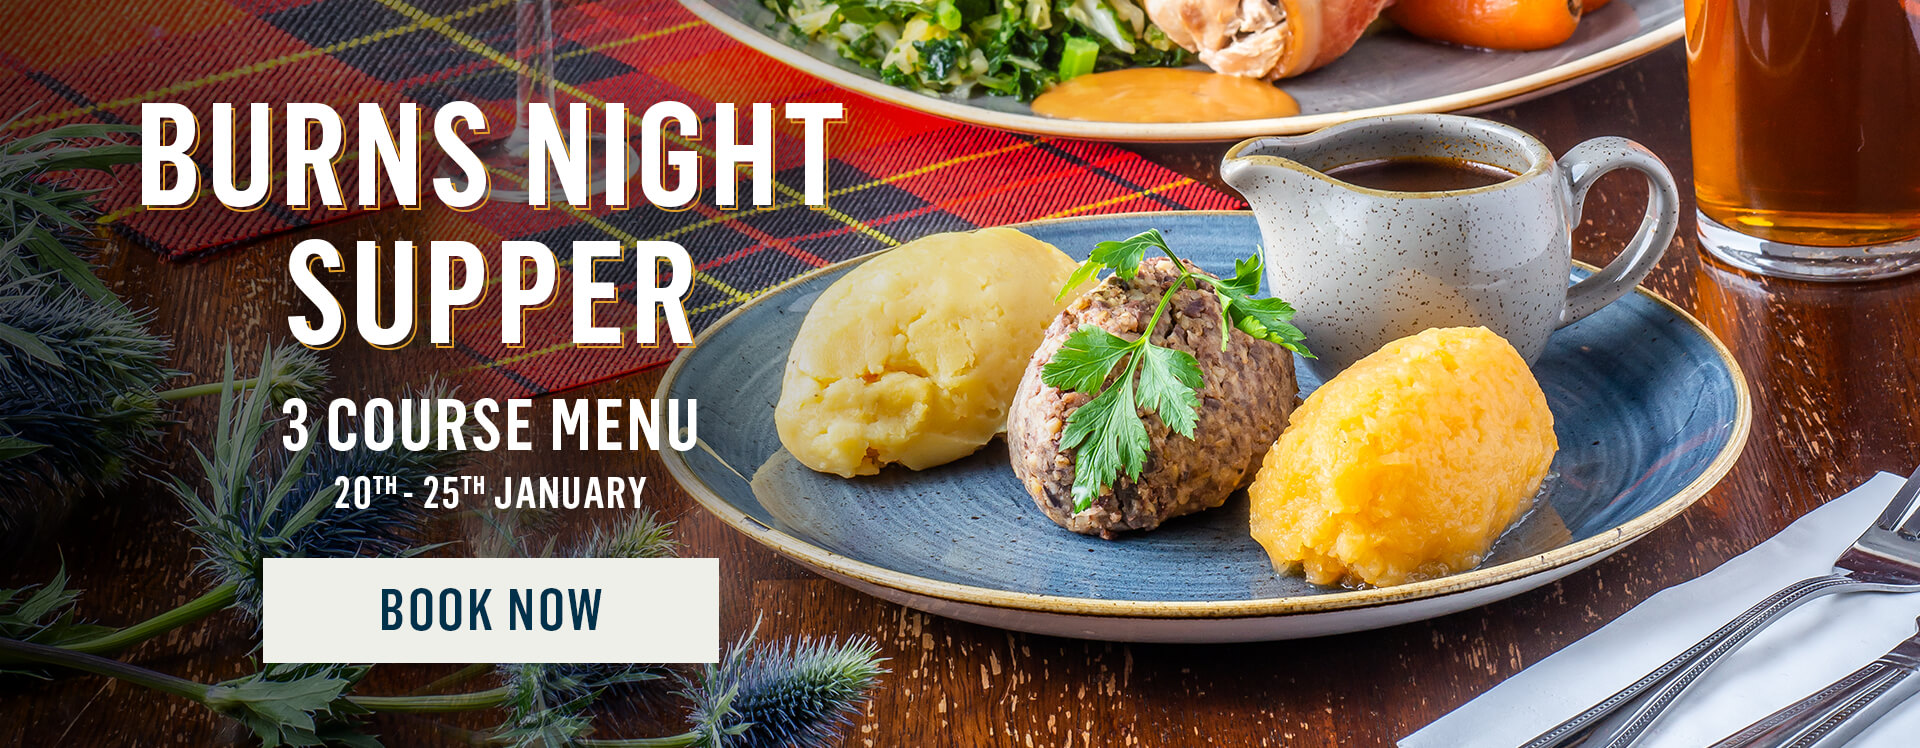 Burns Night at Nicholson's